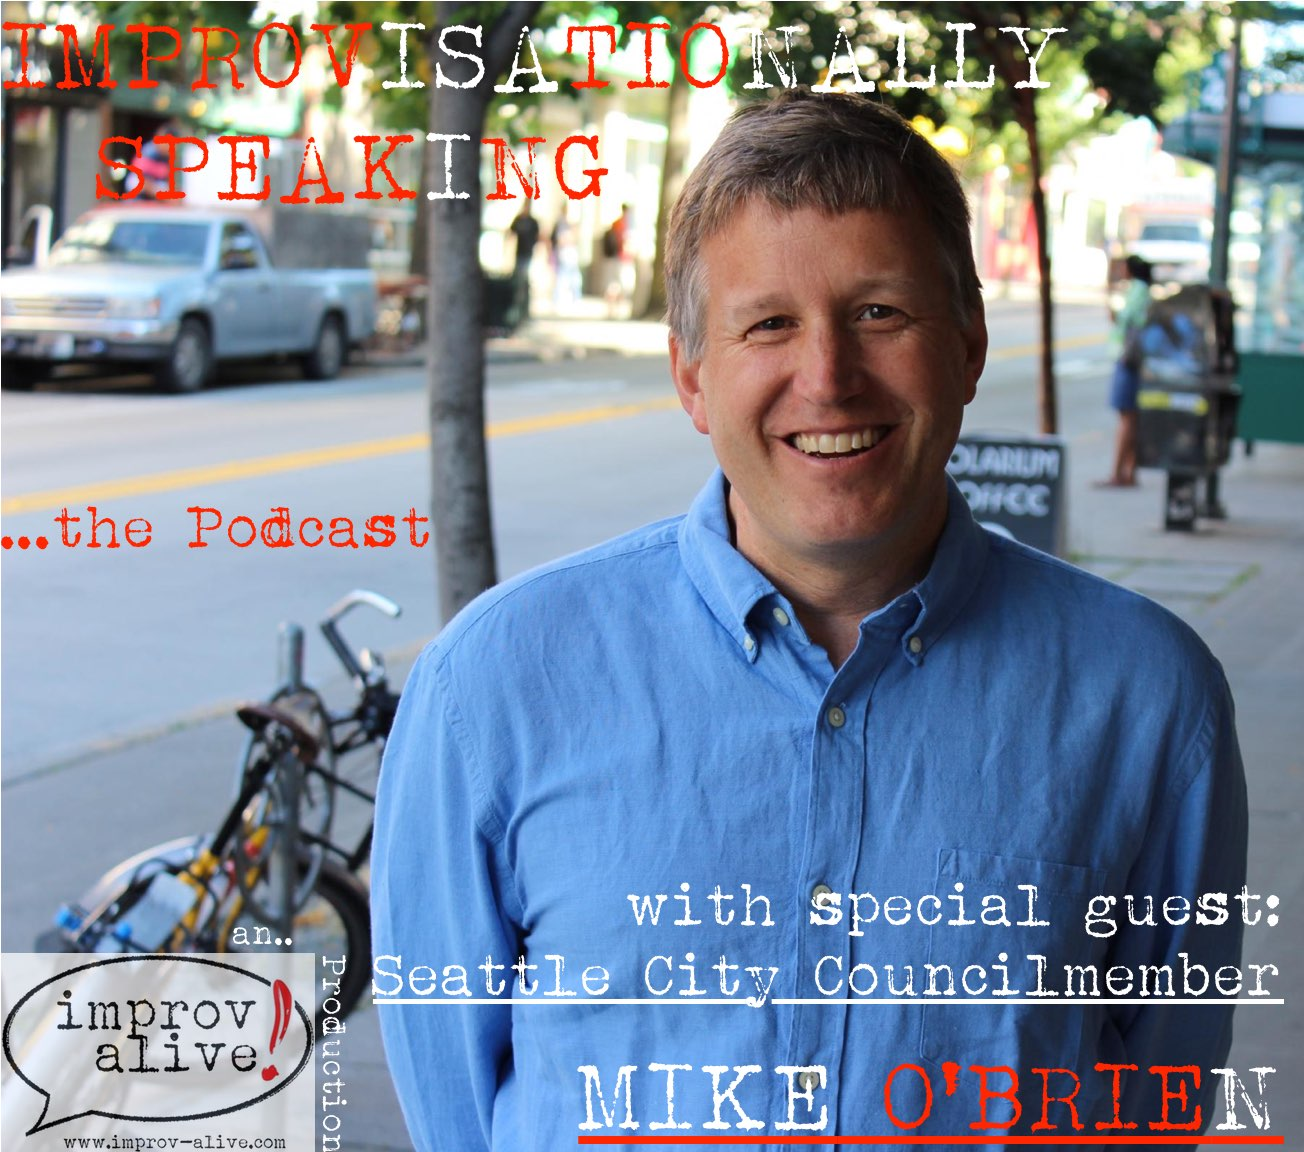 Improvisationally Speaking the Podcast Episode 4 with guest Seattle City Councilmember Mike O'Brien